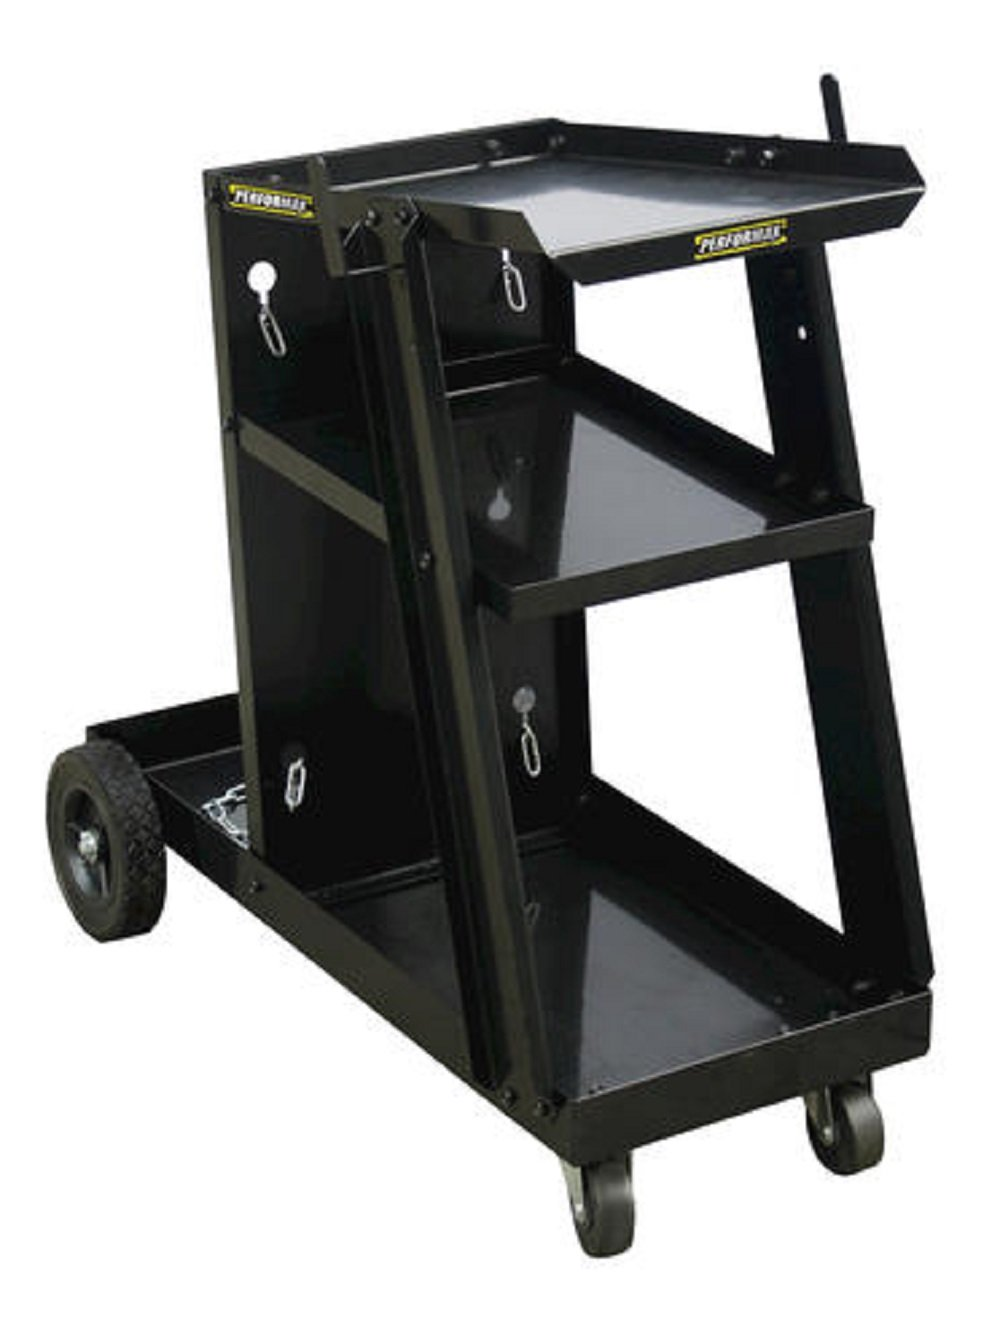 Performax Heavy-Duty Steel Construction With a Rugged Powder-Coat Finish For MIG And Flux-Core Wire Welders Welding Cart - 28.35' L x 11.02' W x 3.15' D